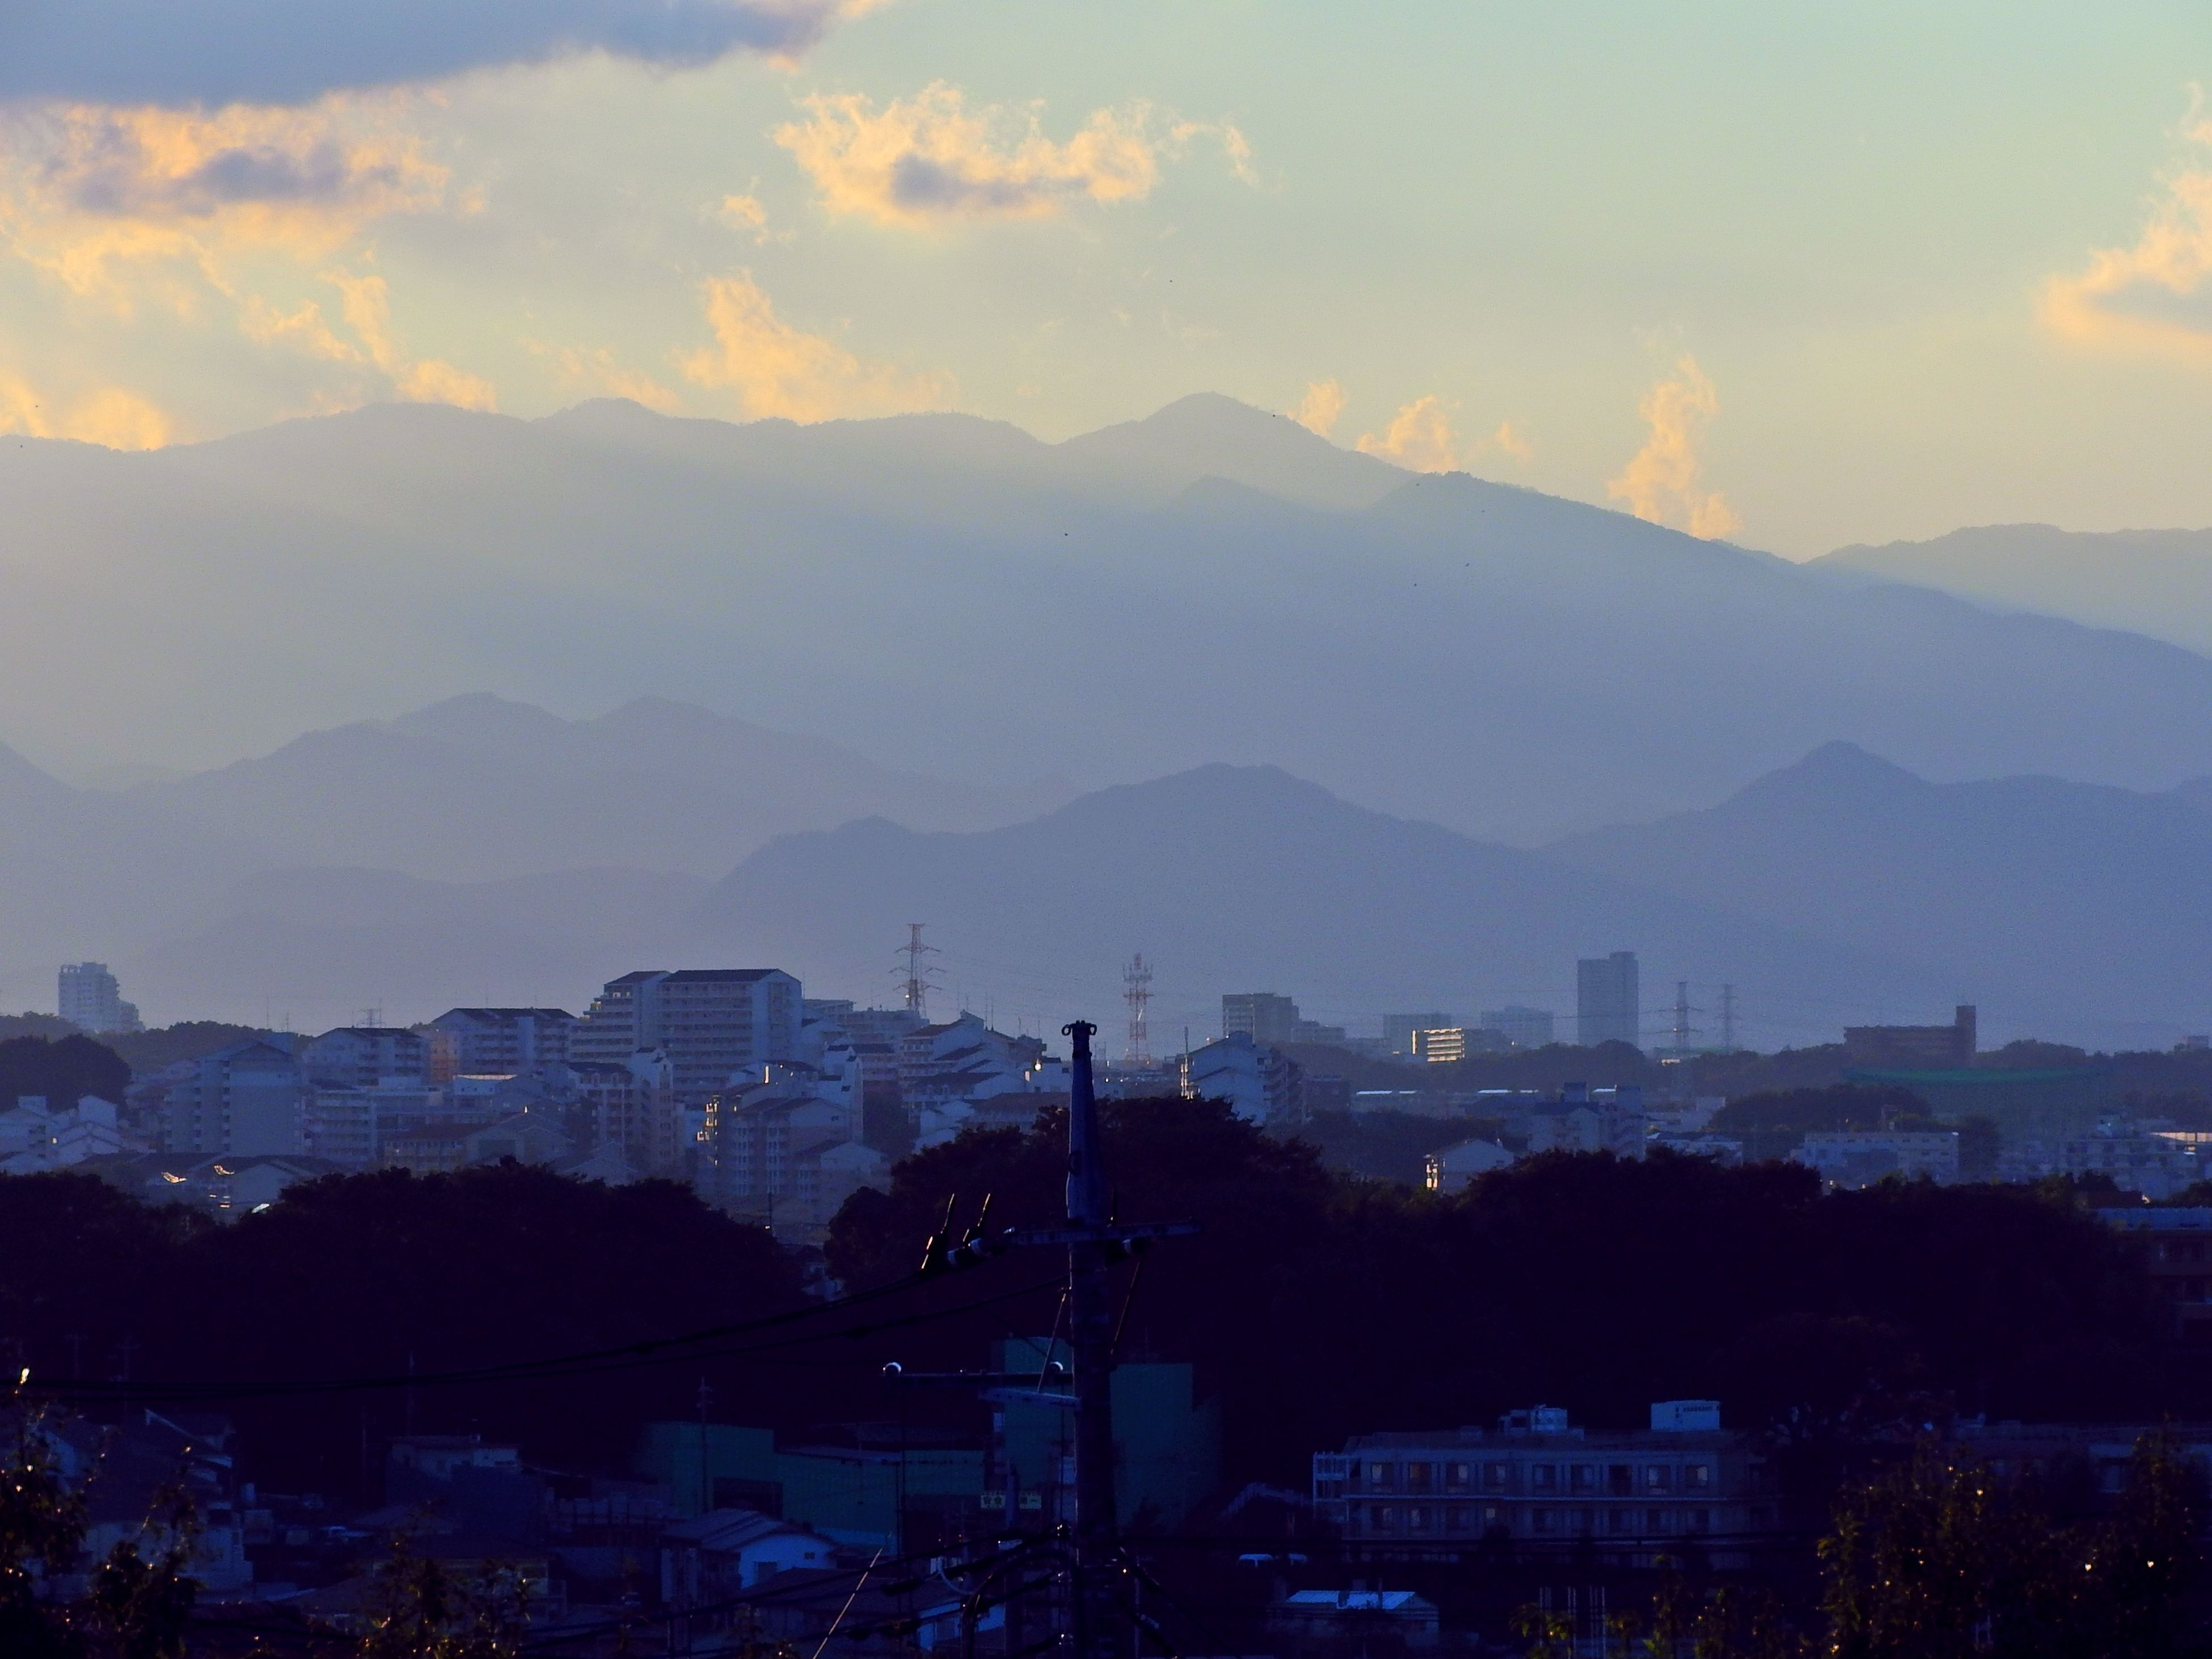 city, architecture, sunset, mountain, building exterior, cityscape, built structure, silhouette, no people, dusk, sky, nature, outdoors, mountain range, skyscraper, beauty in nature, day